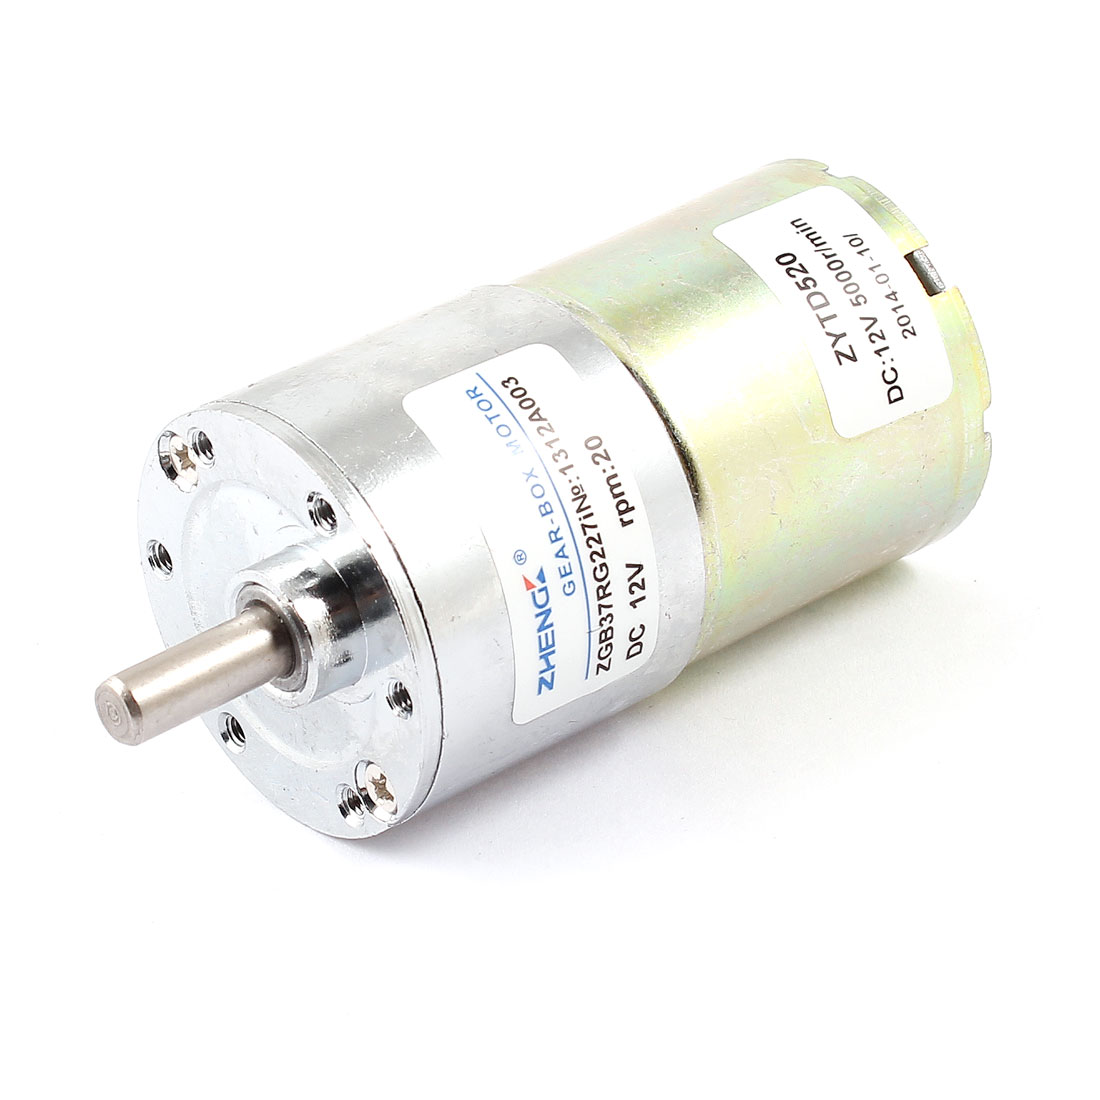 Shaft Diameter 6mm x 15mm DC 12V 20 RPM Speed 6mm Dia Shaft Magnetic Gearbox Electric Geared Motor 37mm x 86mm original vans classic unisex white skateboarding shoes old skool sports shoes sneakers free shipping